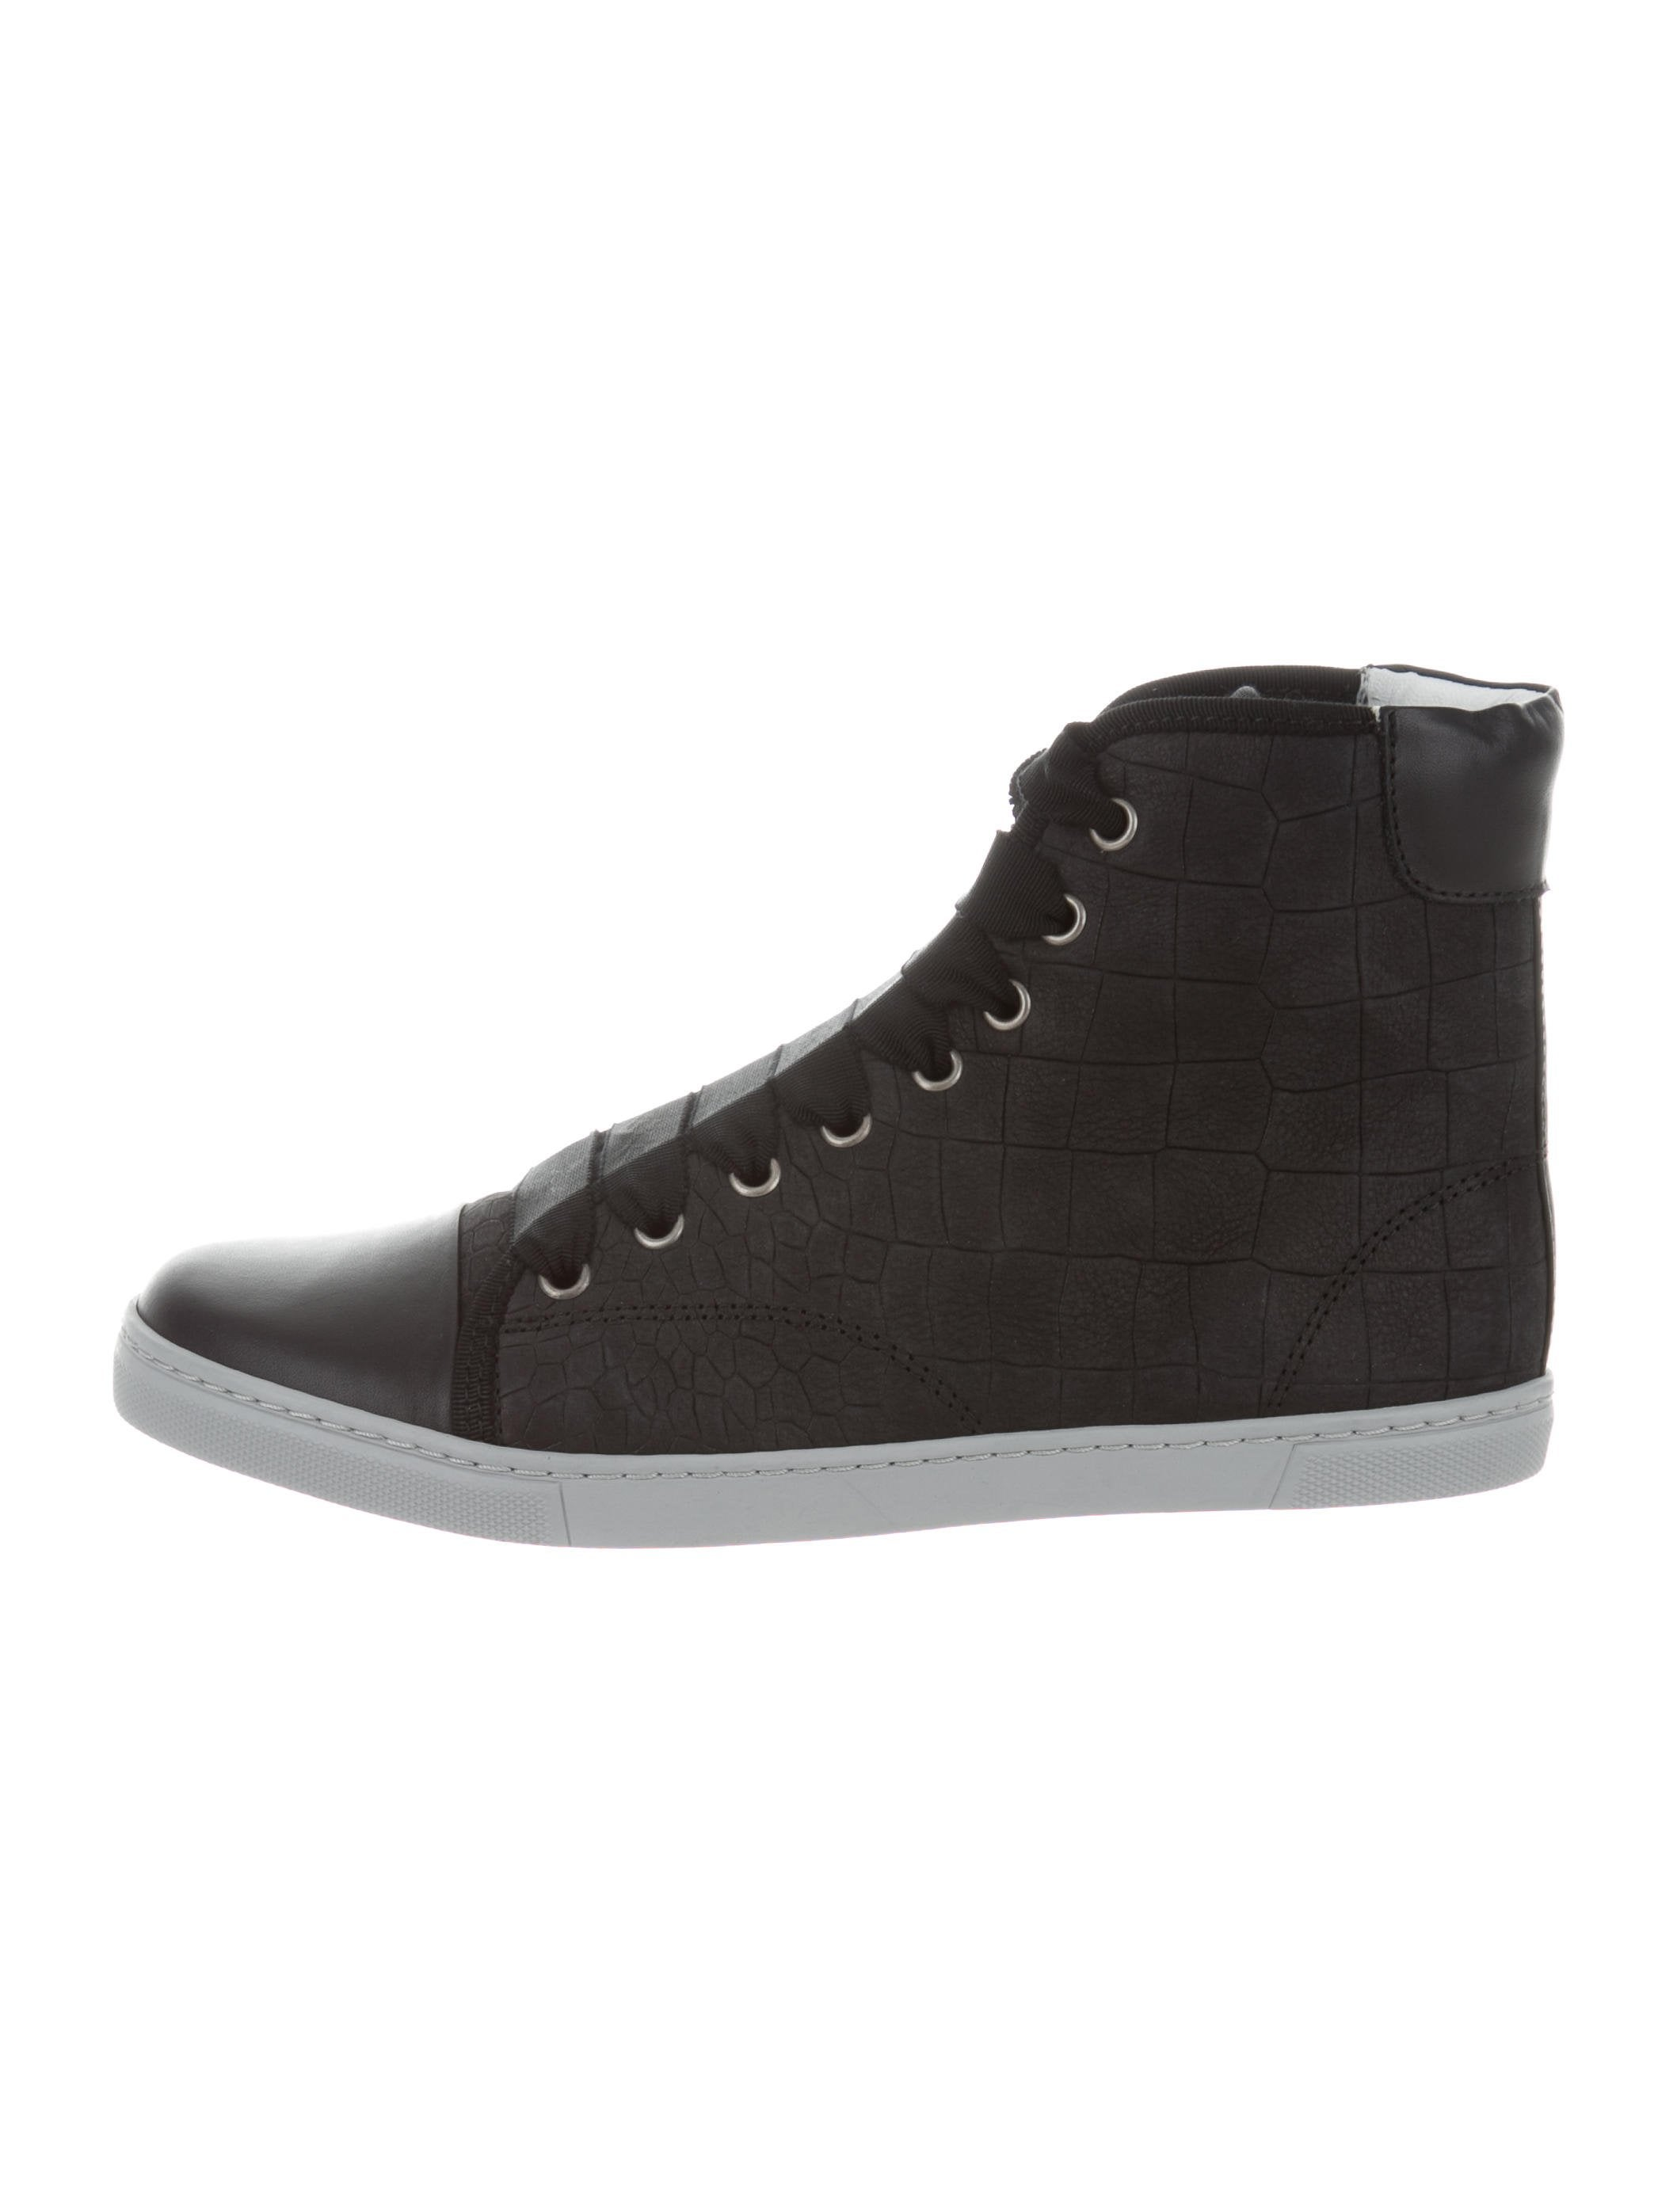 Lanvin Embossed High-Top Sneakers w/ Tags clearance in China clearance low price mEvG9j